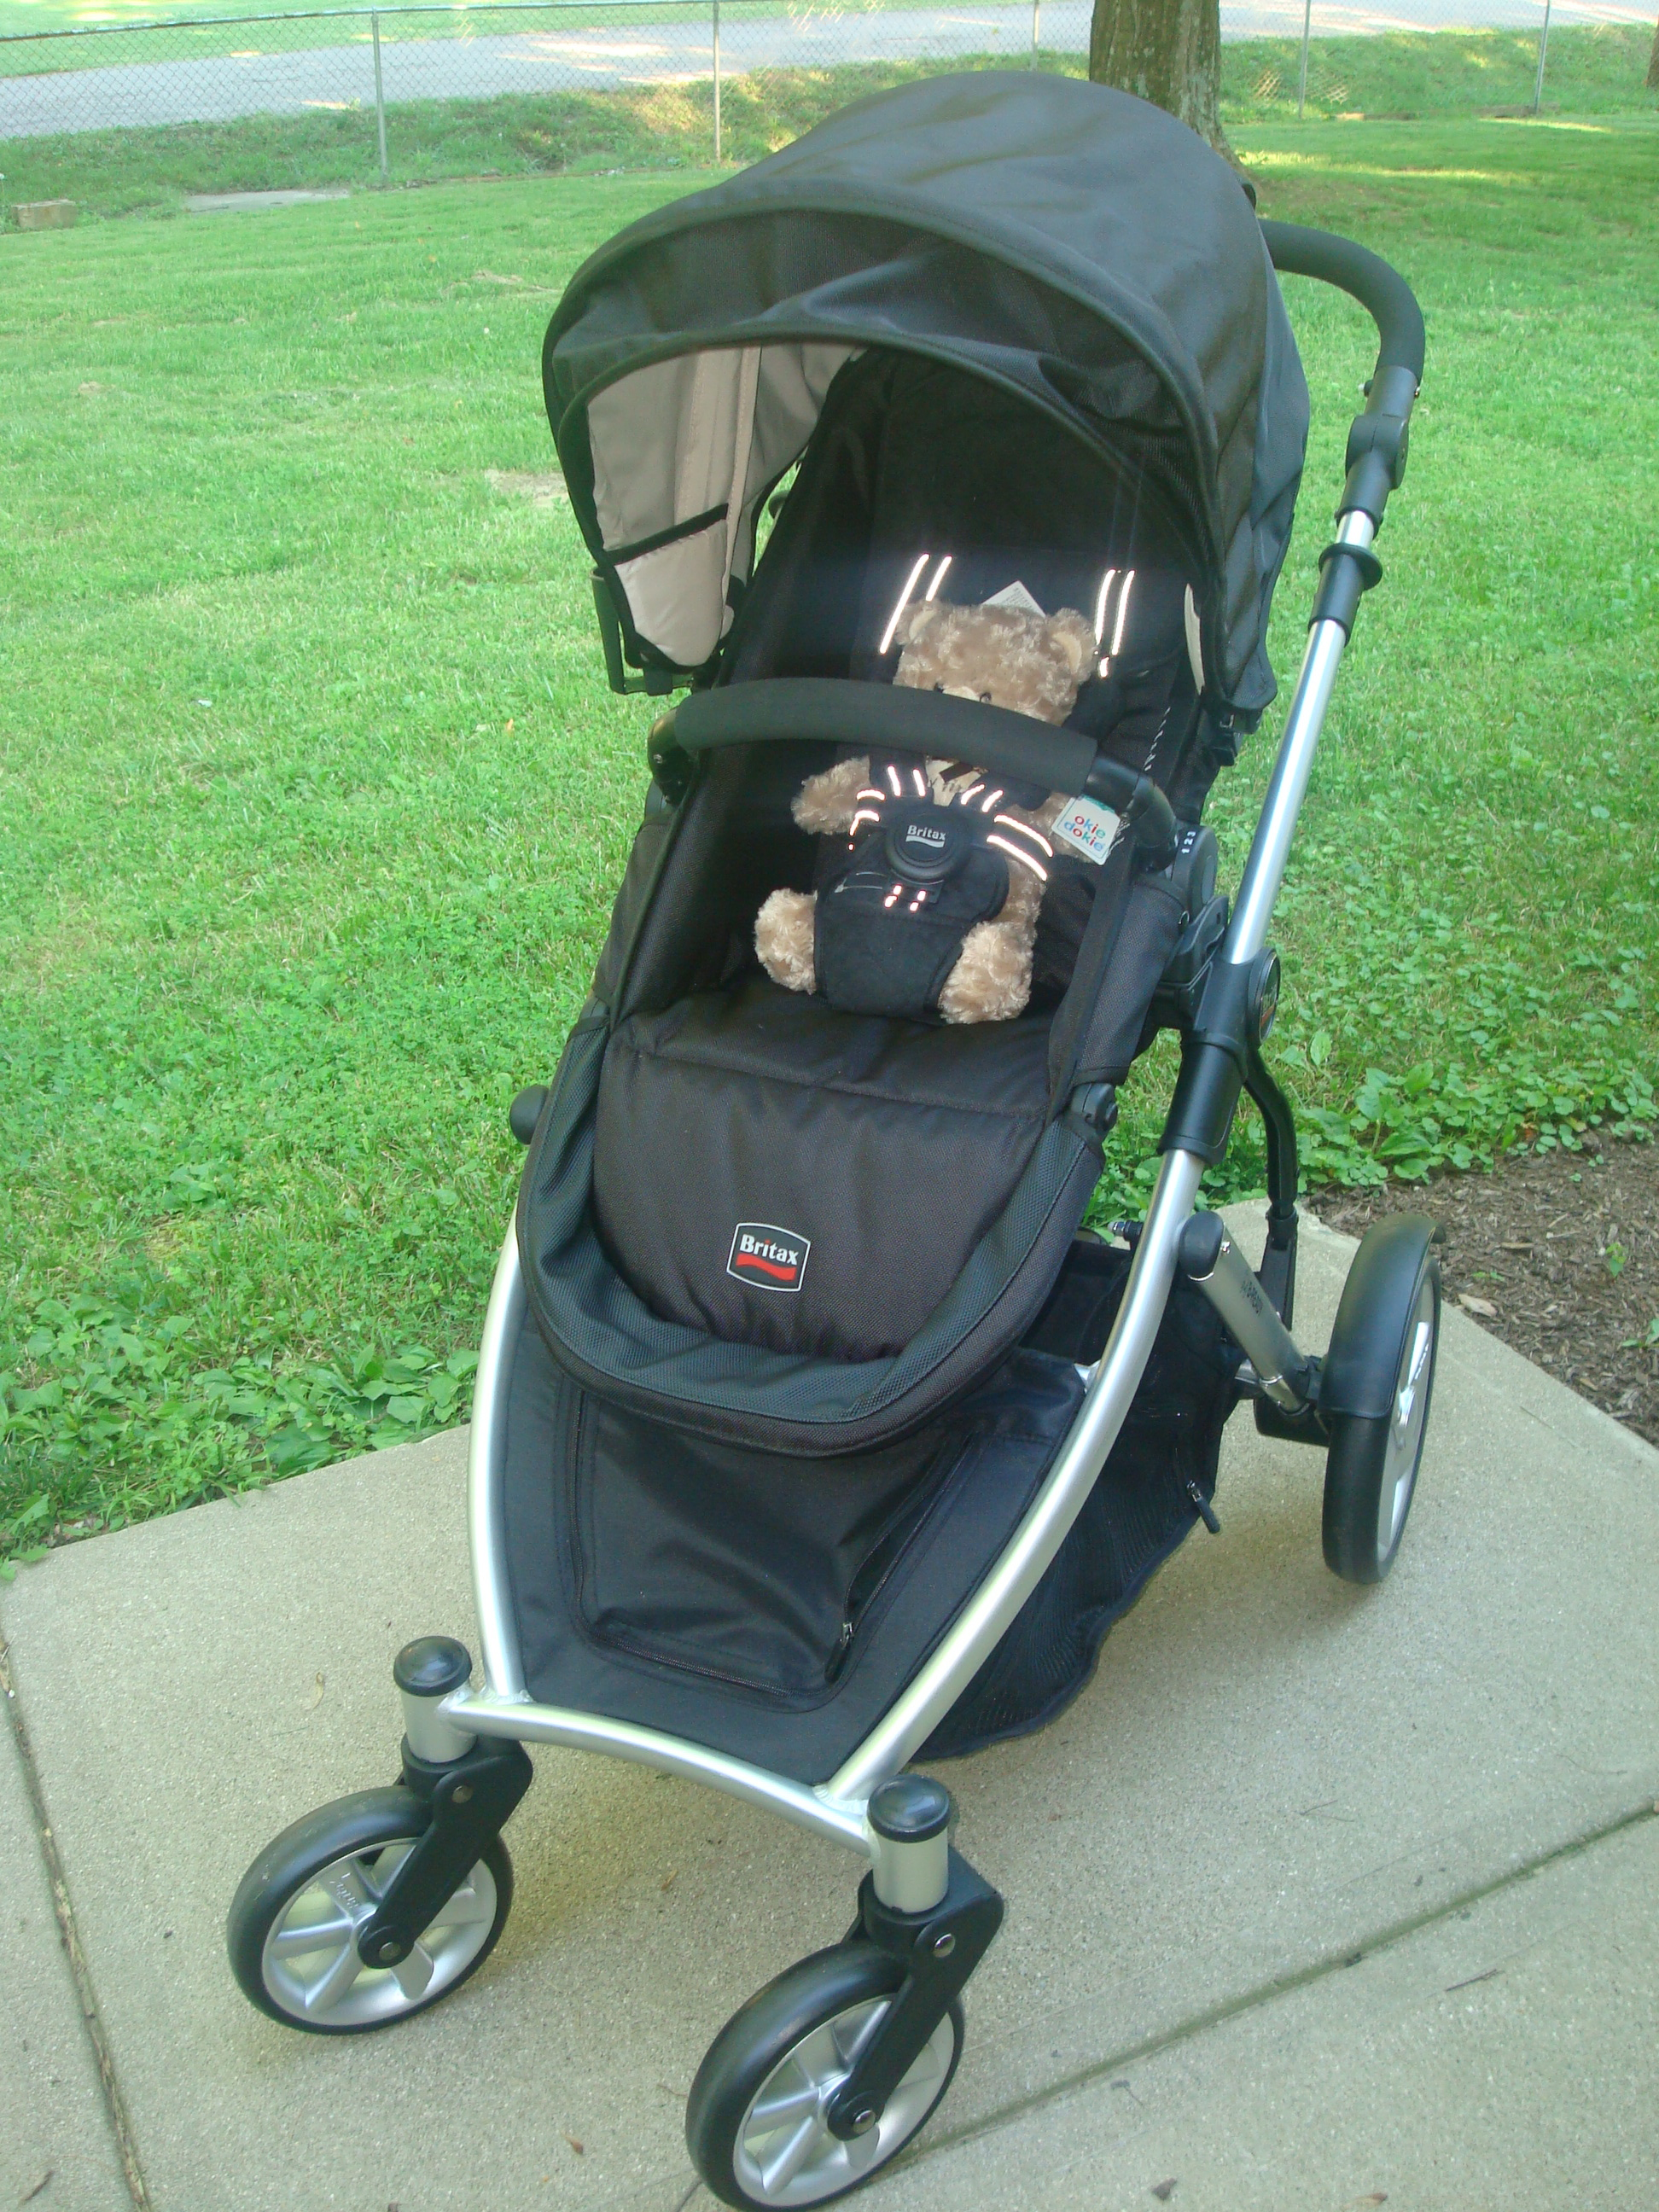 I M In Love My Britax B Ready Stroller Review